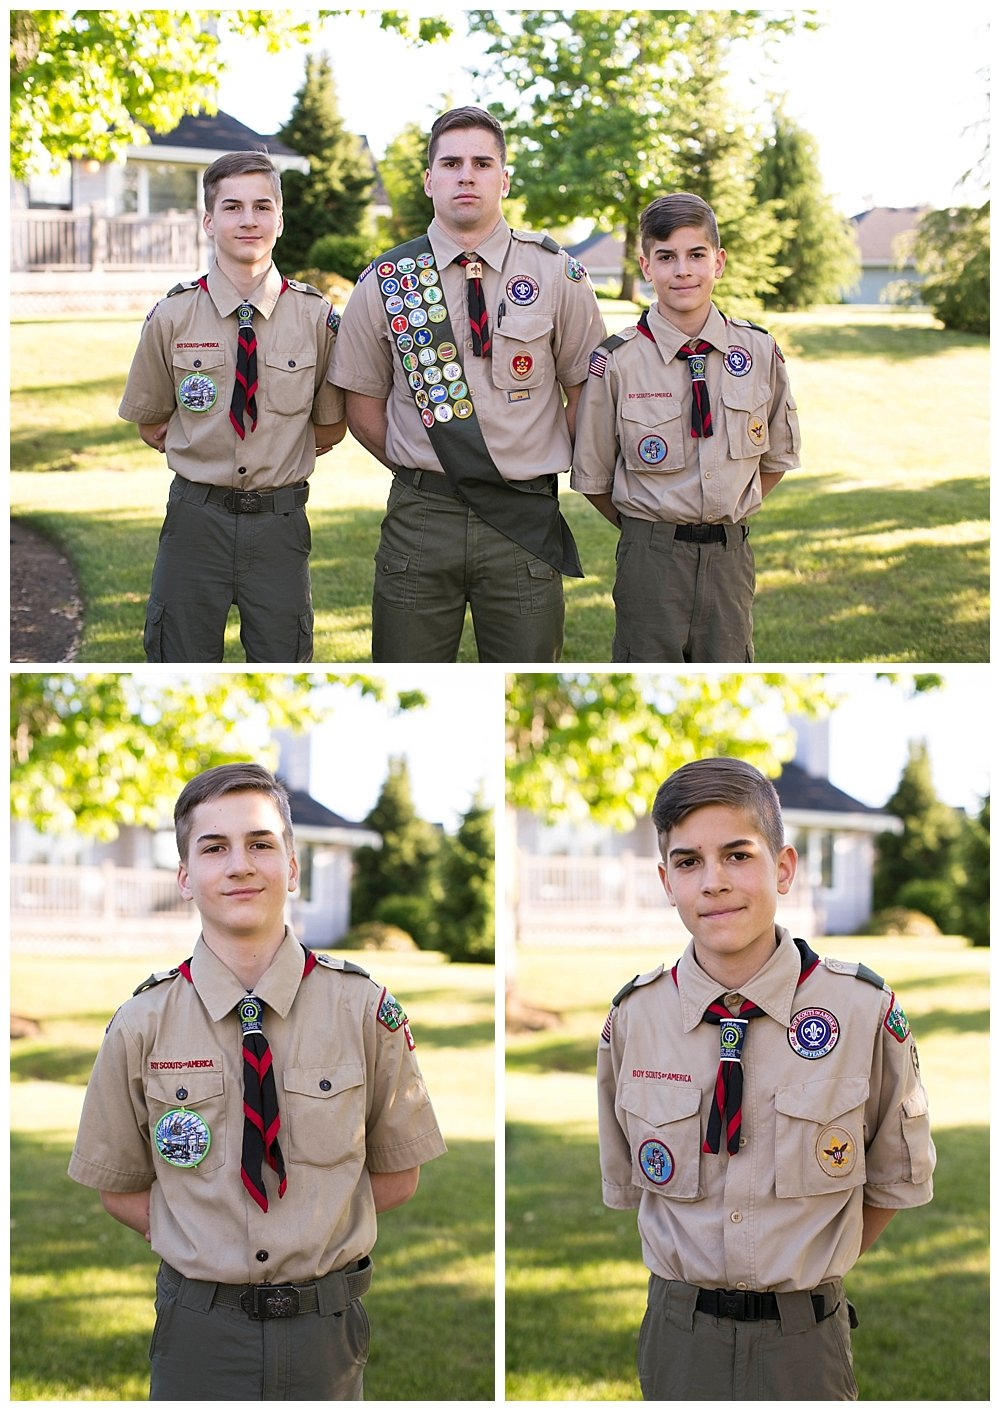 Three Boy Scouts at Enoch's Eagle Scout ceremony.